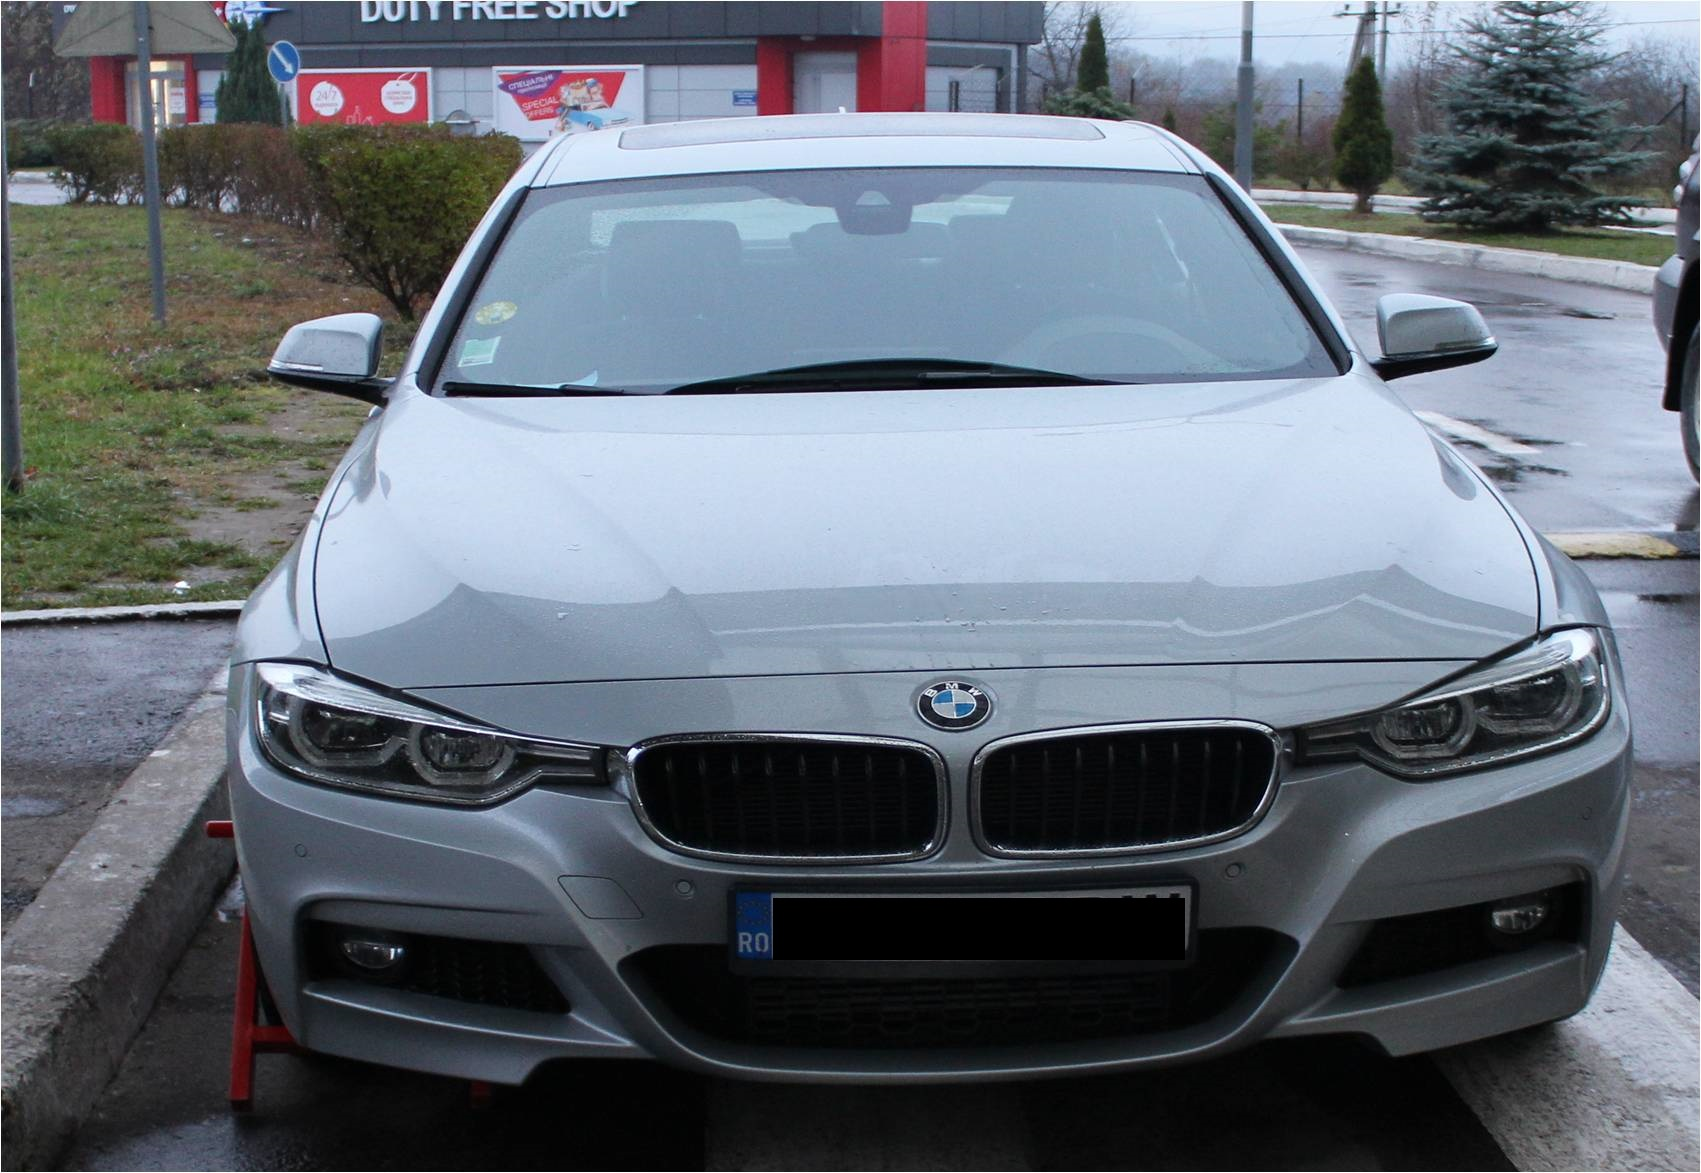 Border guards detained the new BMW stolen in France